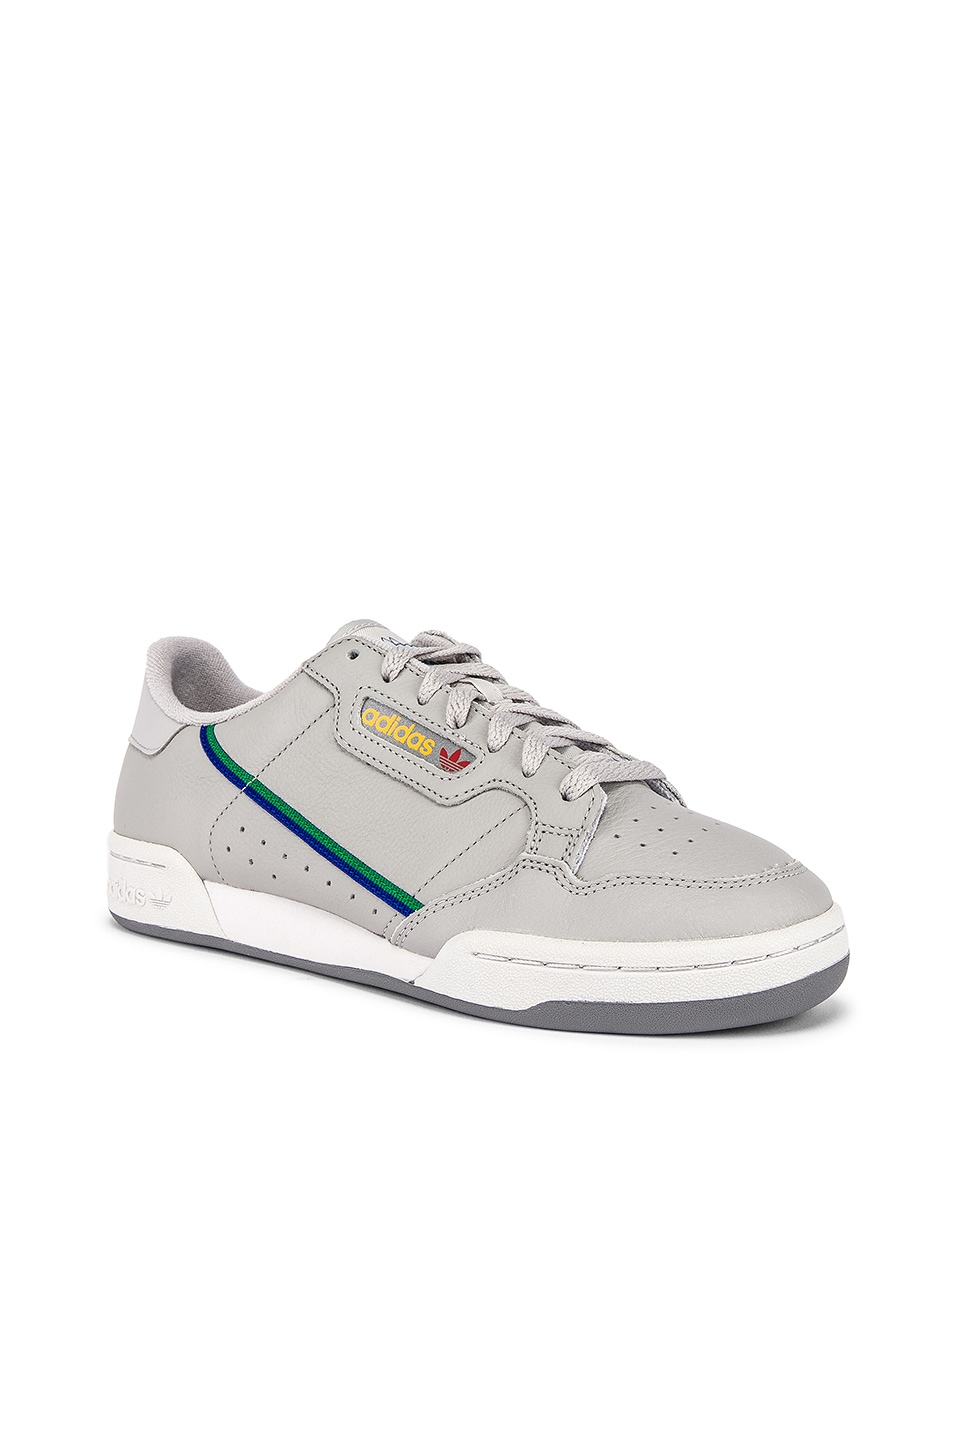 designer fashion 1d071 8ceda adidas Originals Continental 80 in Grey TWO   Grey ONE   Scarlet